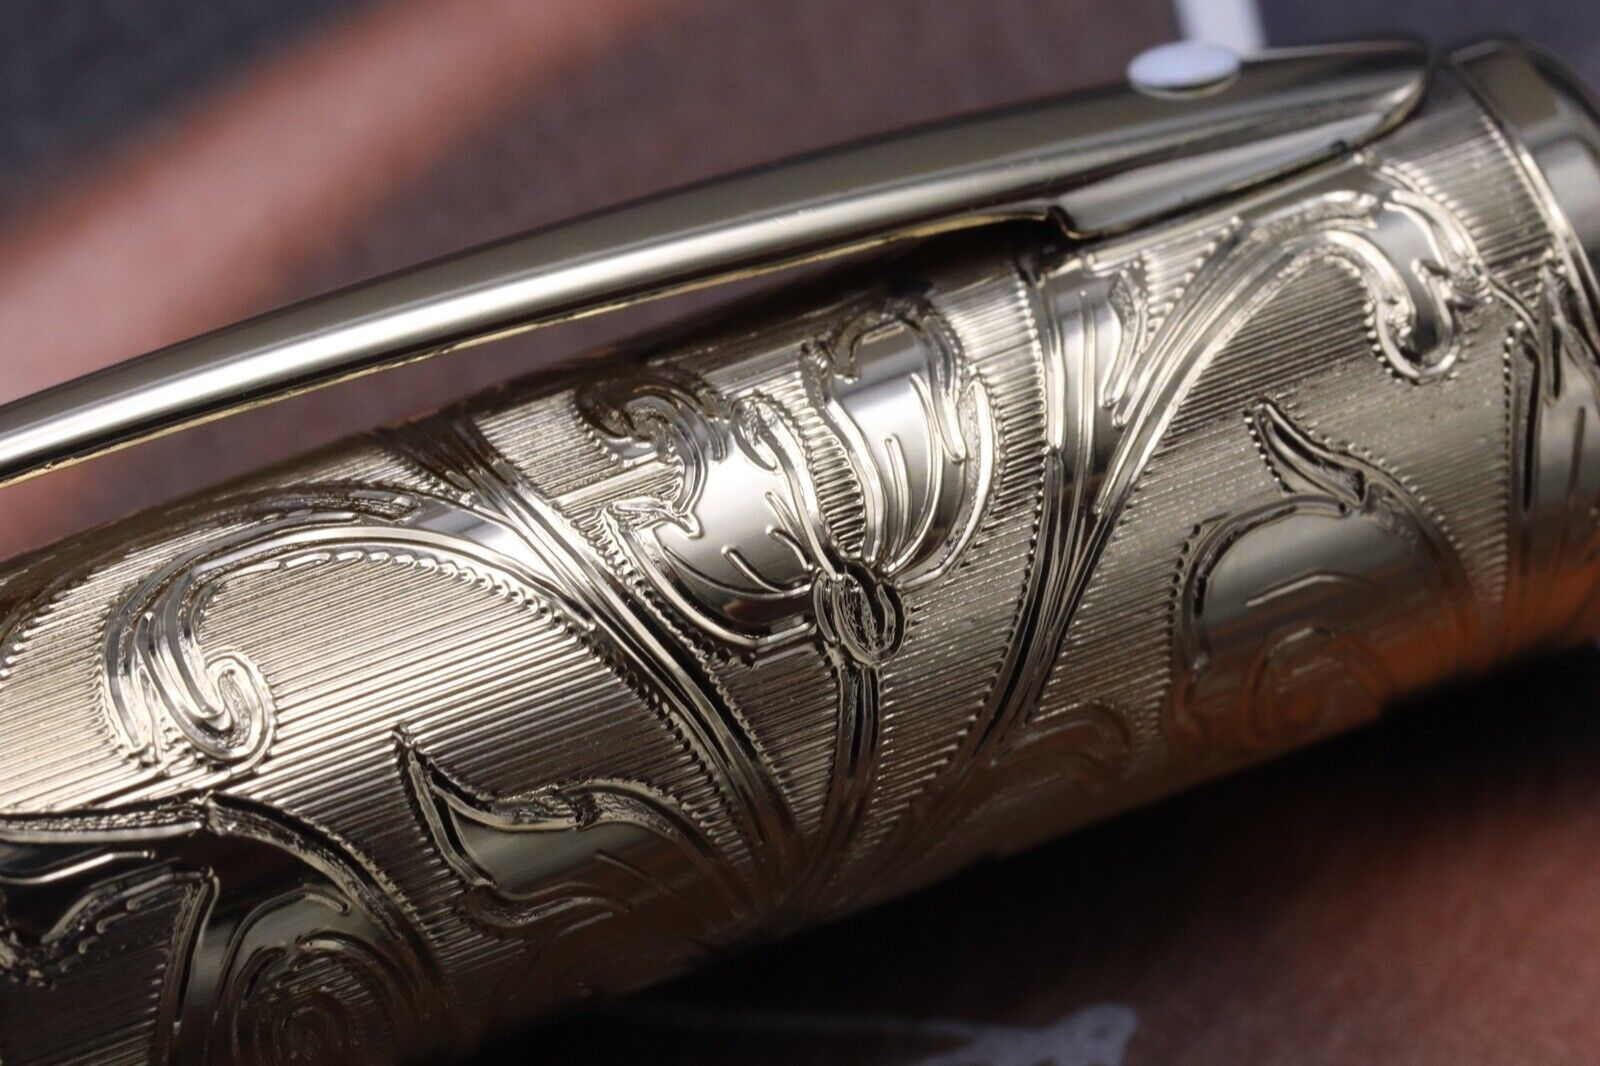 W.A Sheaffer Commemorative LE Lever Fill Fountain Pen - Fully Serviced July 21 5